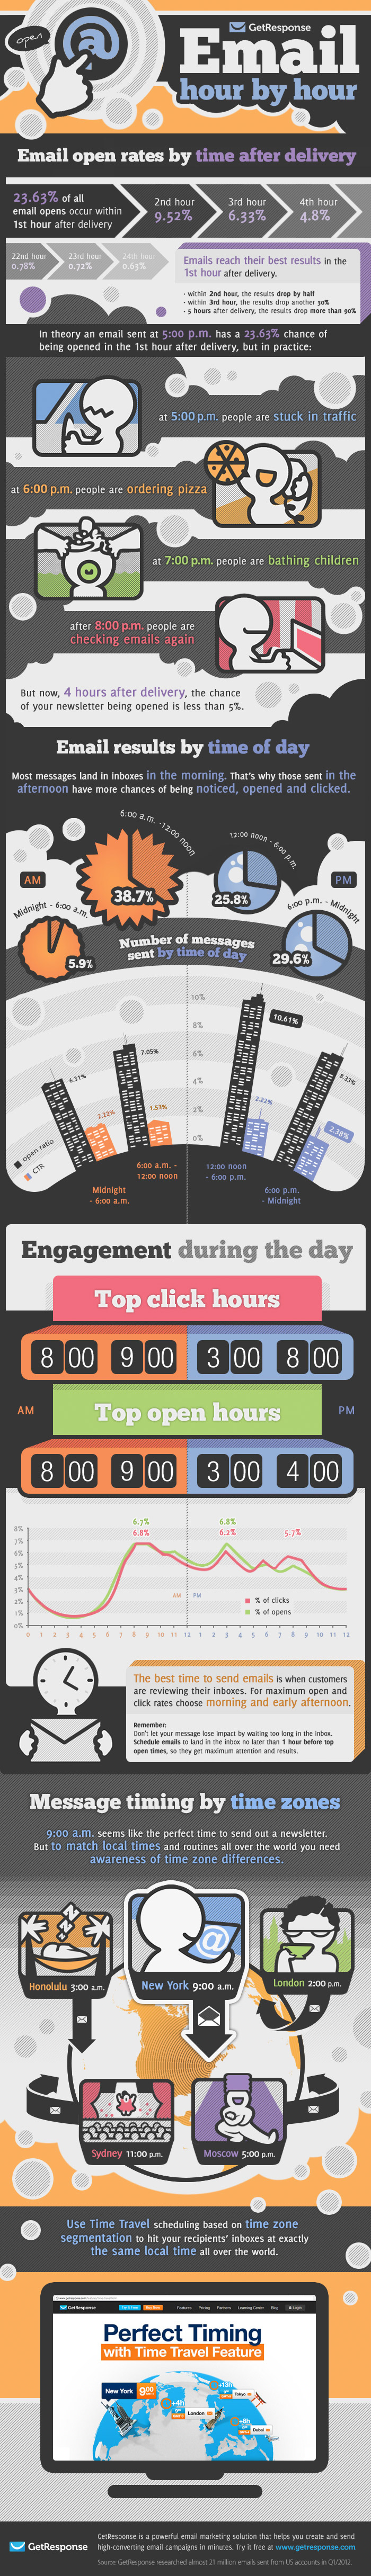 What Is The Best Time Of The Day To Send Emails For Maximum Opens And Clicks? Here's The Answer.